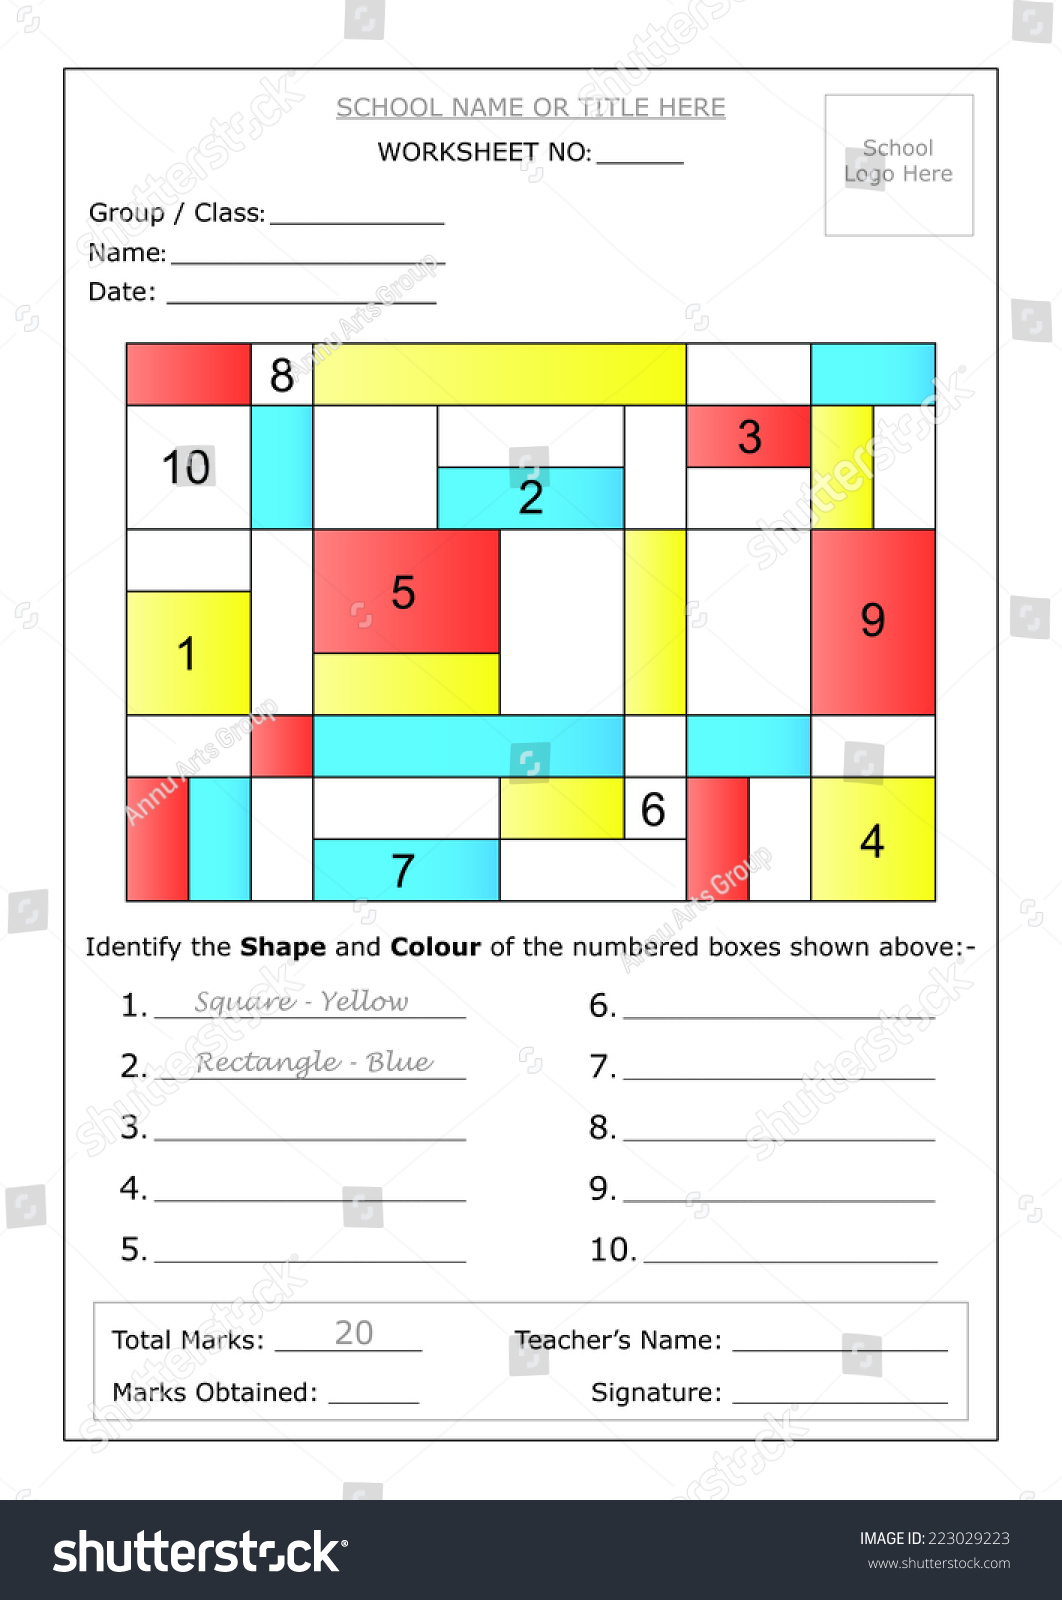 Editable Montessori Worksheet To Identify The Shape And